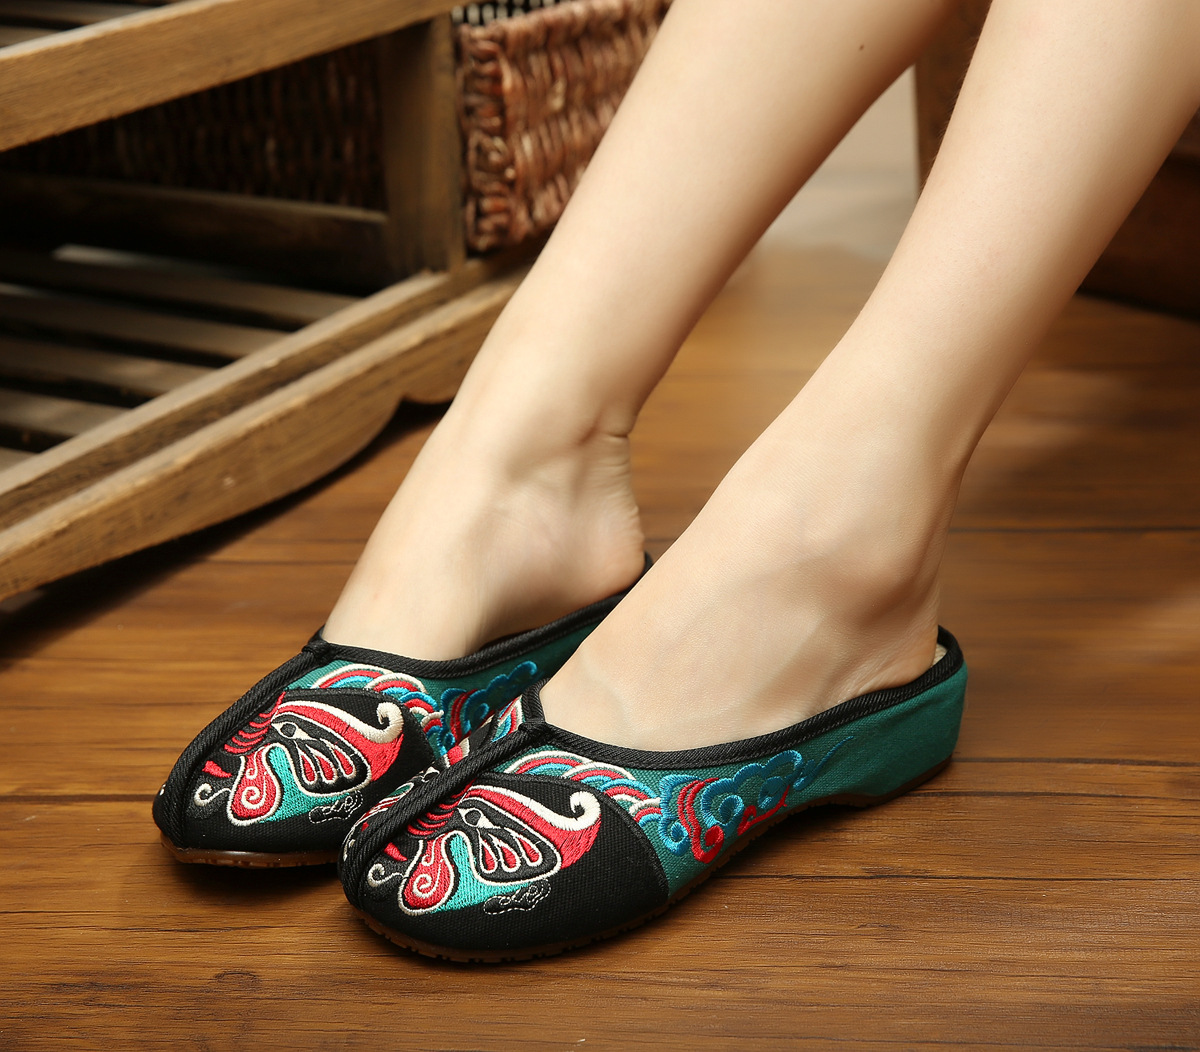 Sandals shoes facebook - Aliexpress Com Buy Facebook Embroidery Slippers Summer Fashion Women Sandals Chinese Casual Slippers 36 41 Sandals Shoes Woman Smyxhx D0111 From Reliable